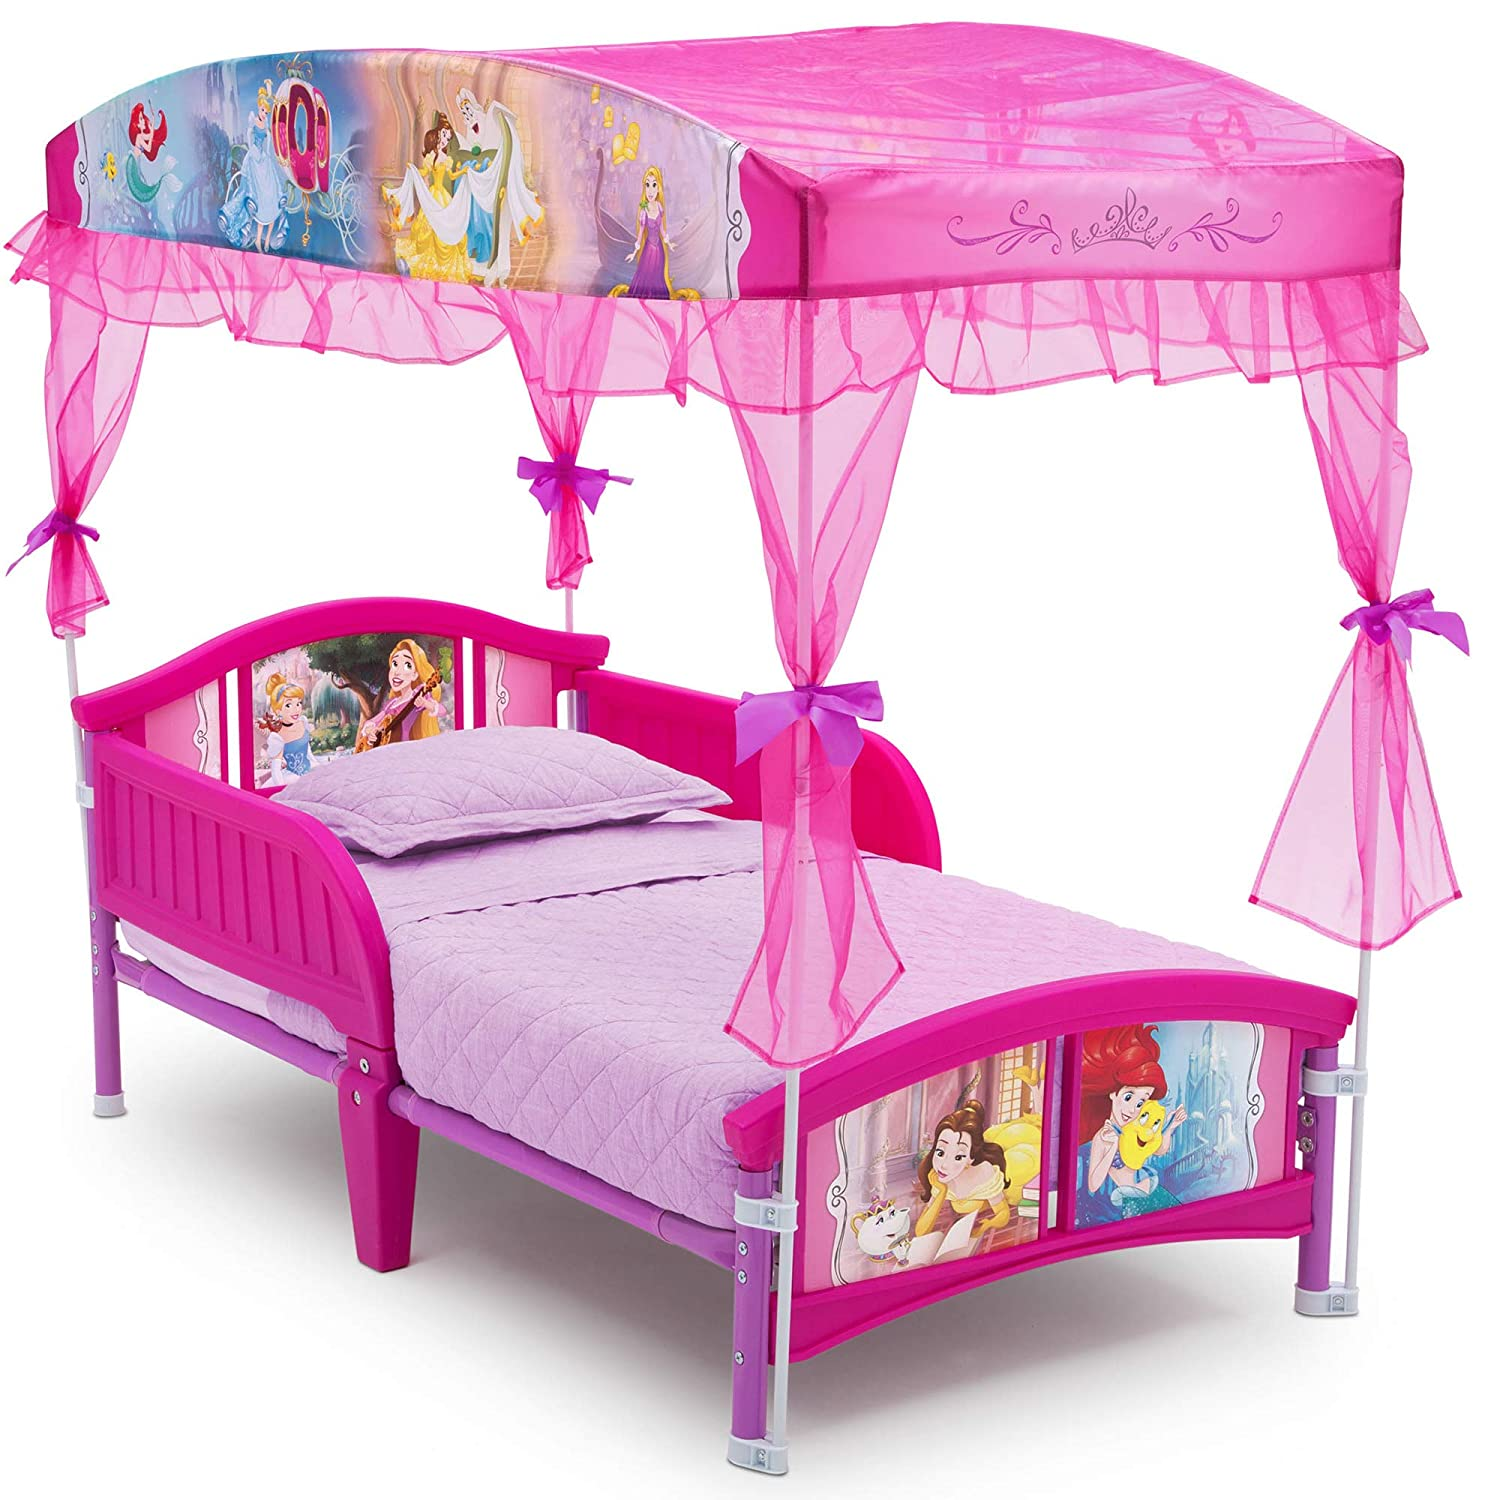 - Amazon.com : Delta Children Canopy Toddler Bed, Disney Princess : Baby